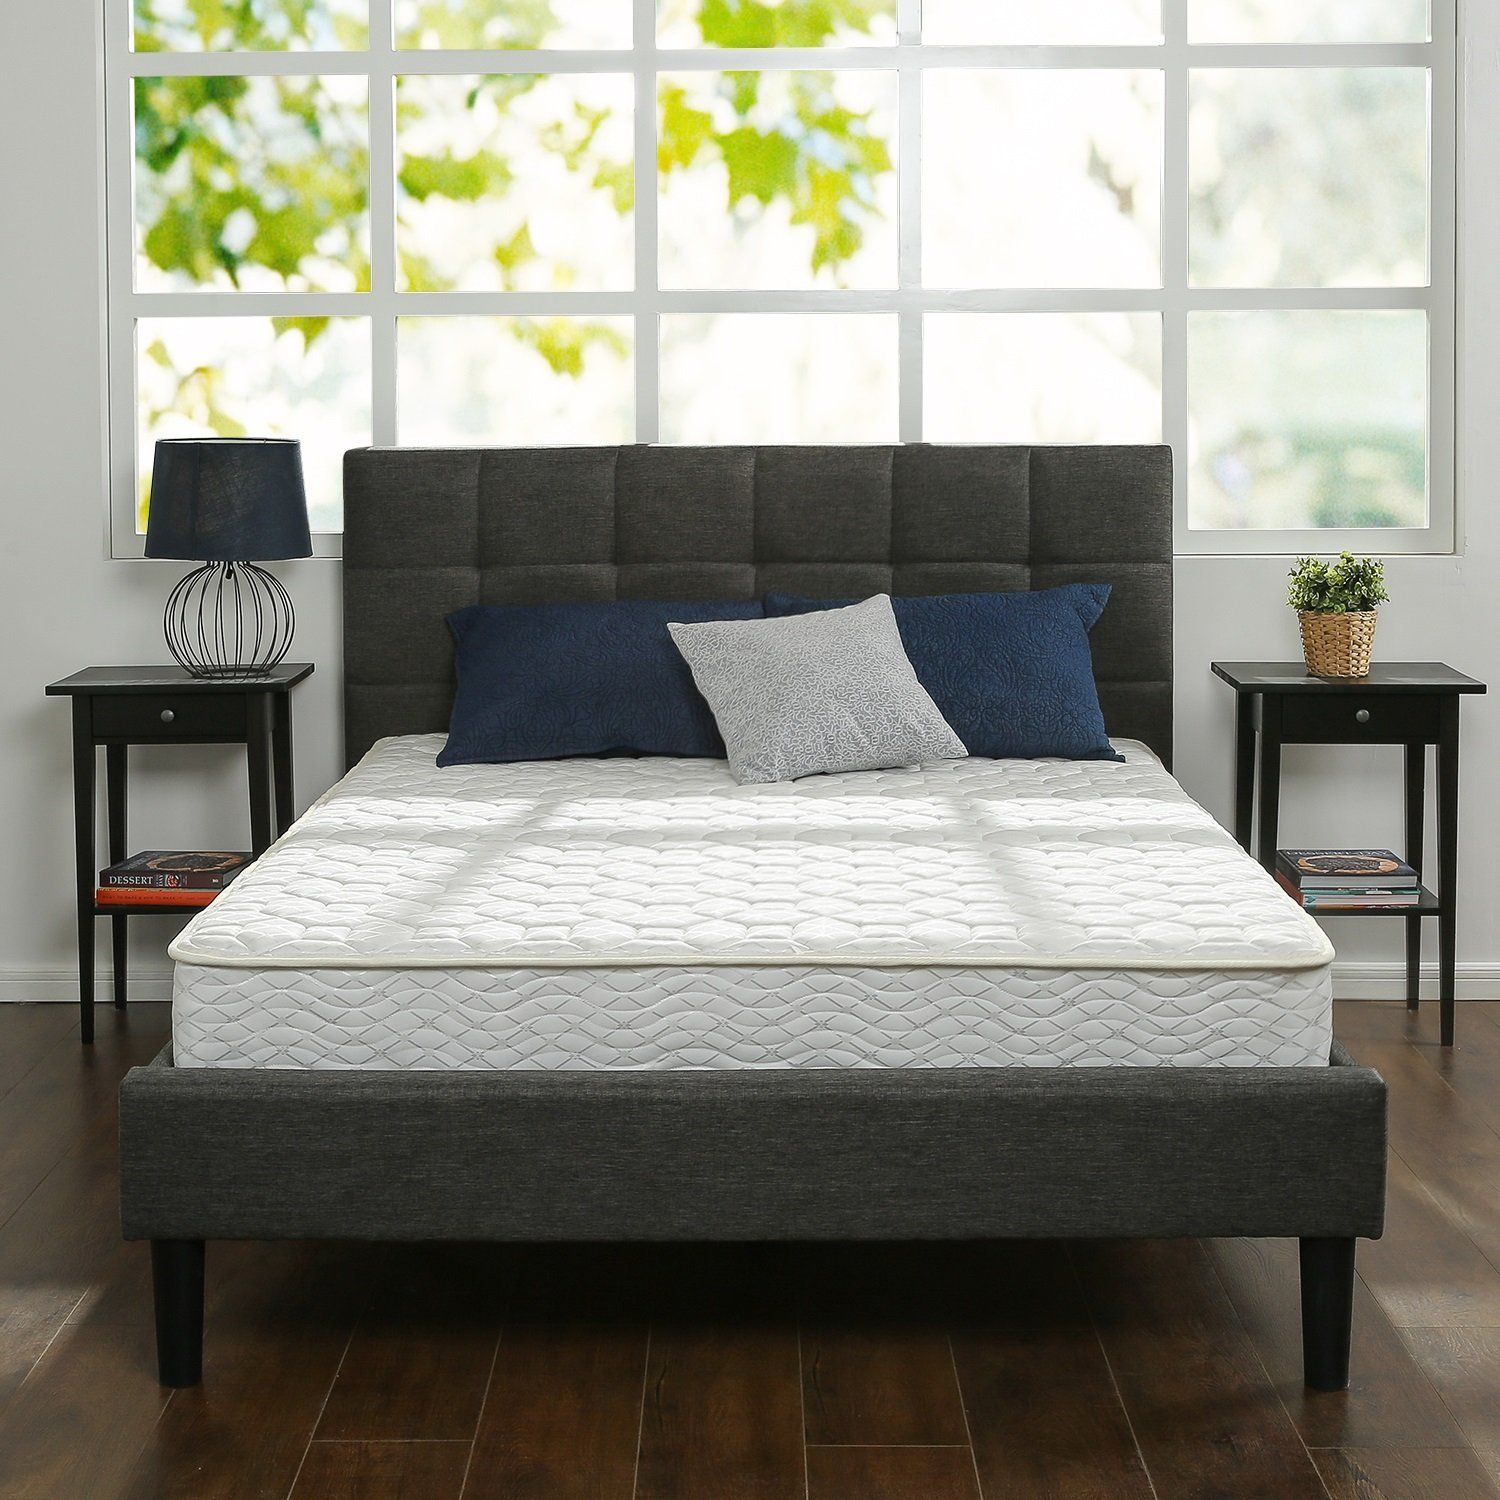 Zinus 8 Inch Hybrid Green Tea Foam and Spring Mattress